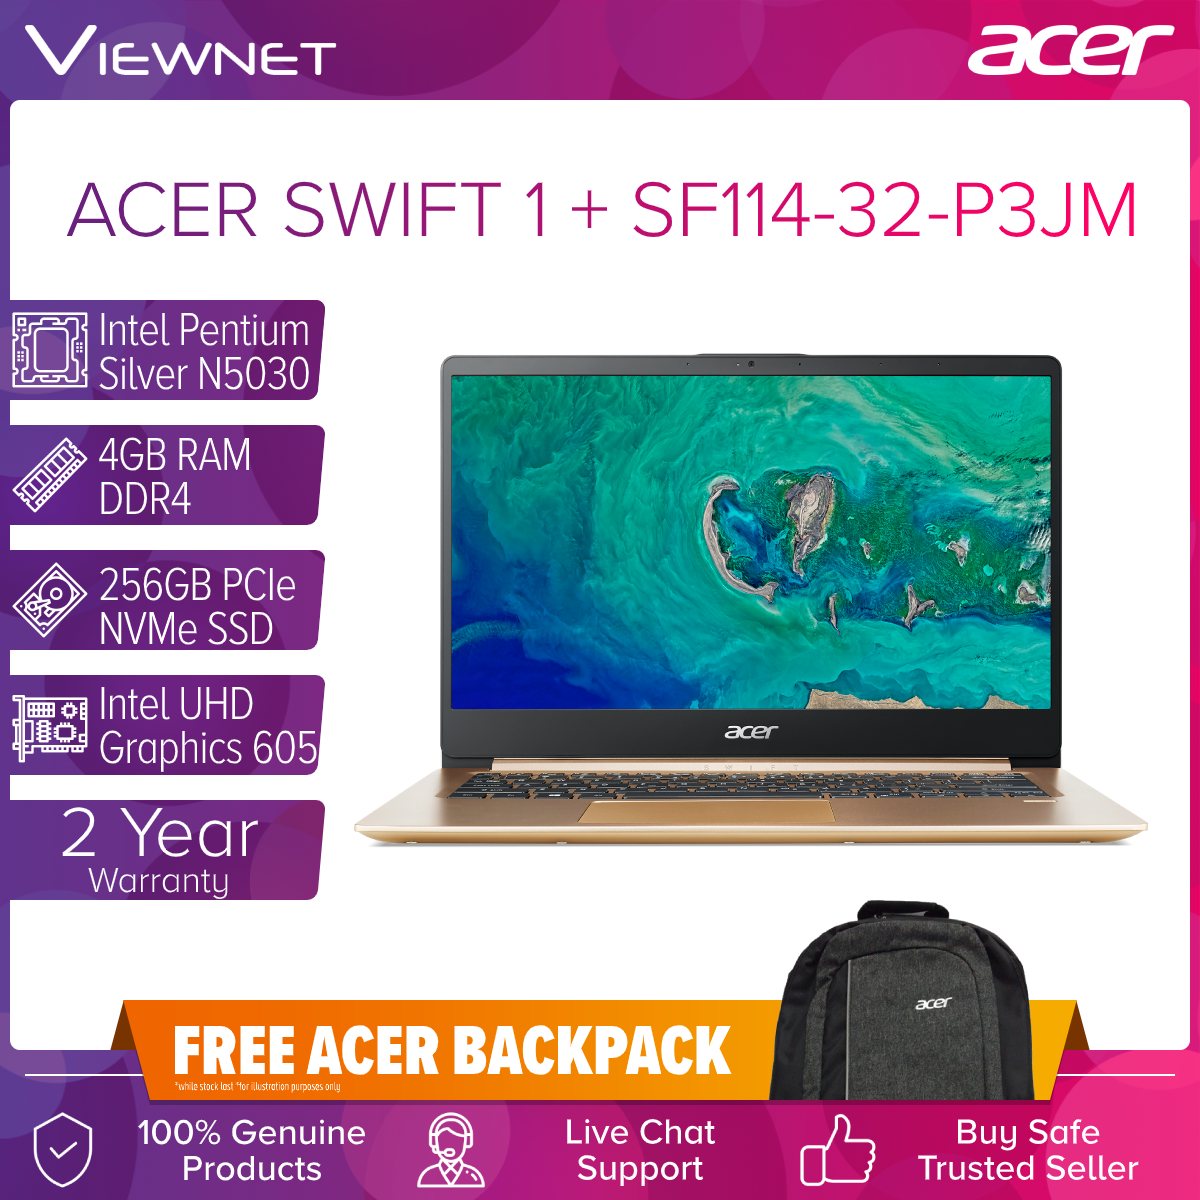 Acer Swift 1 LAPTOP SF114-32-P3JM 14